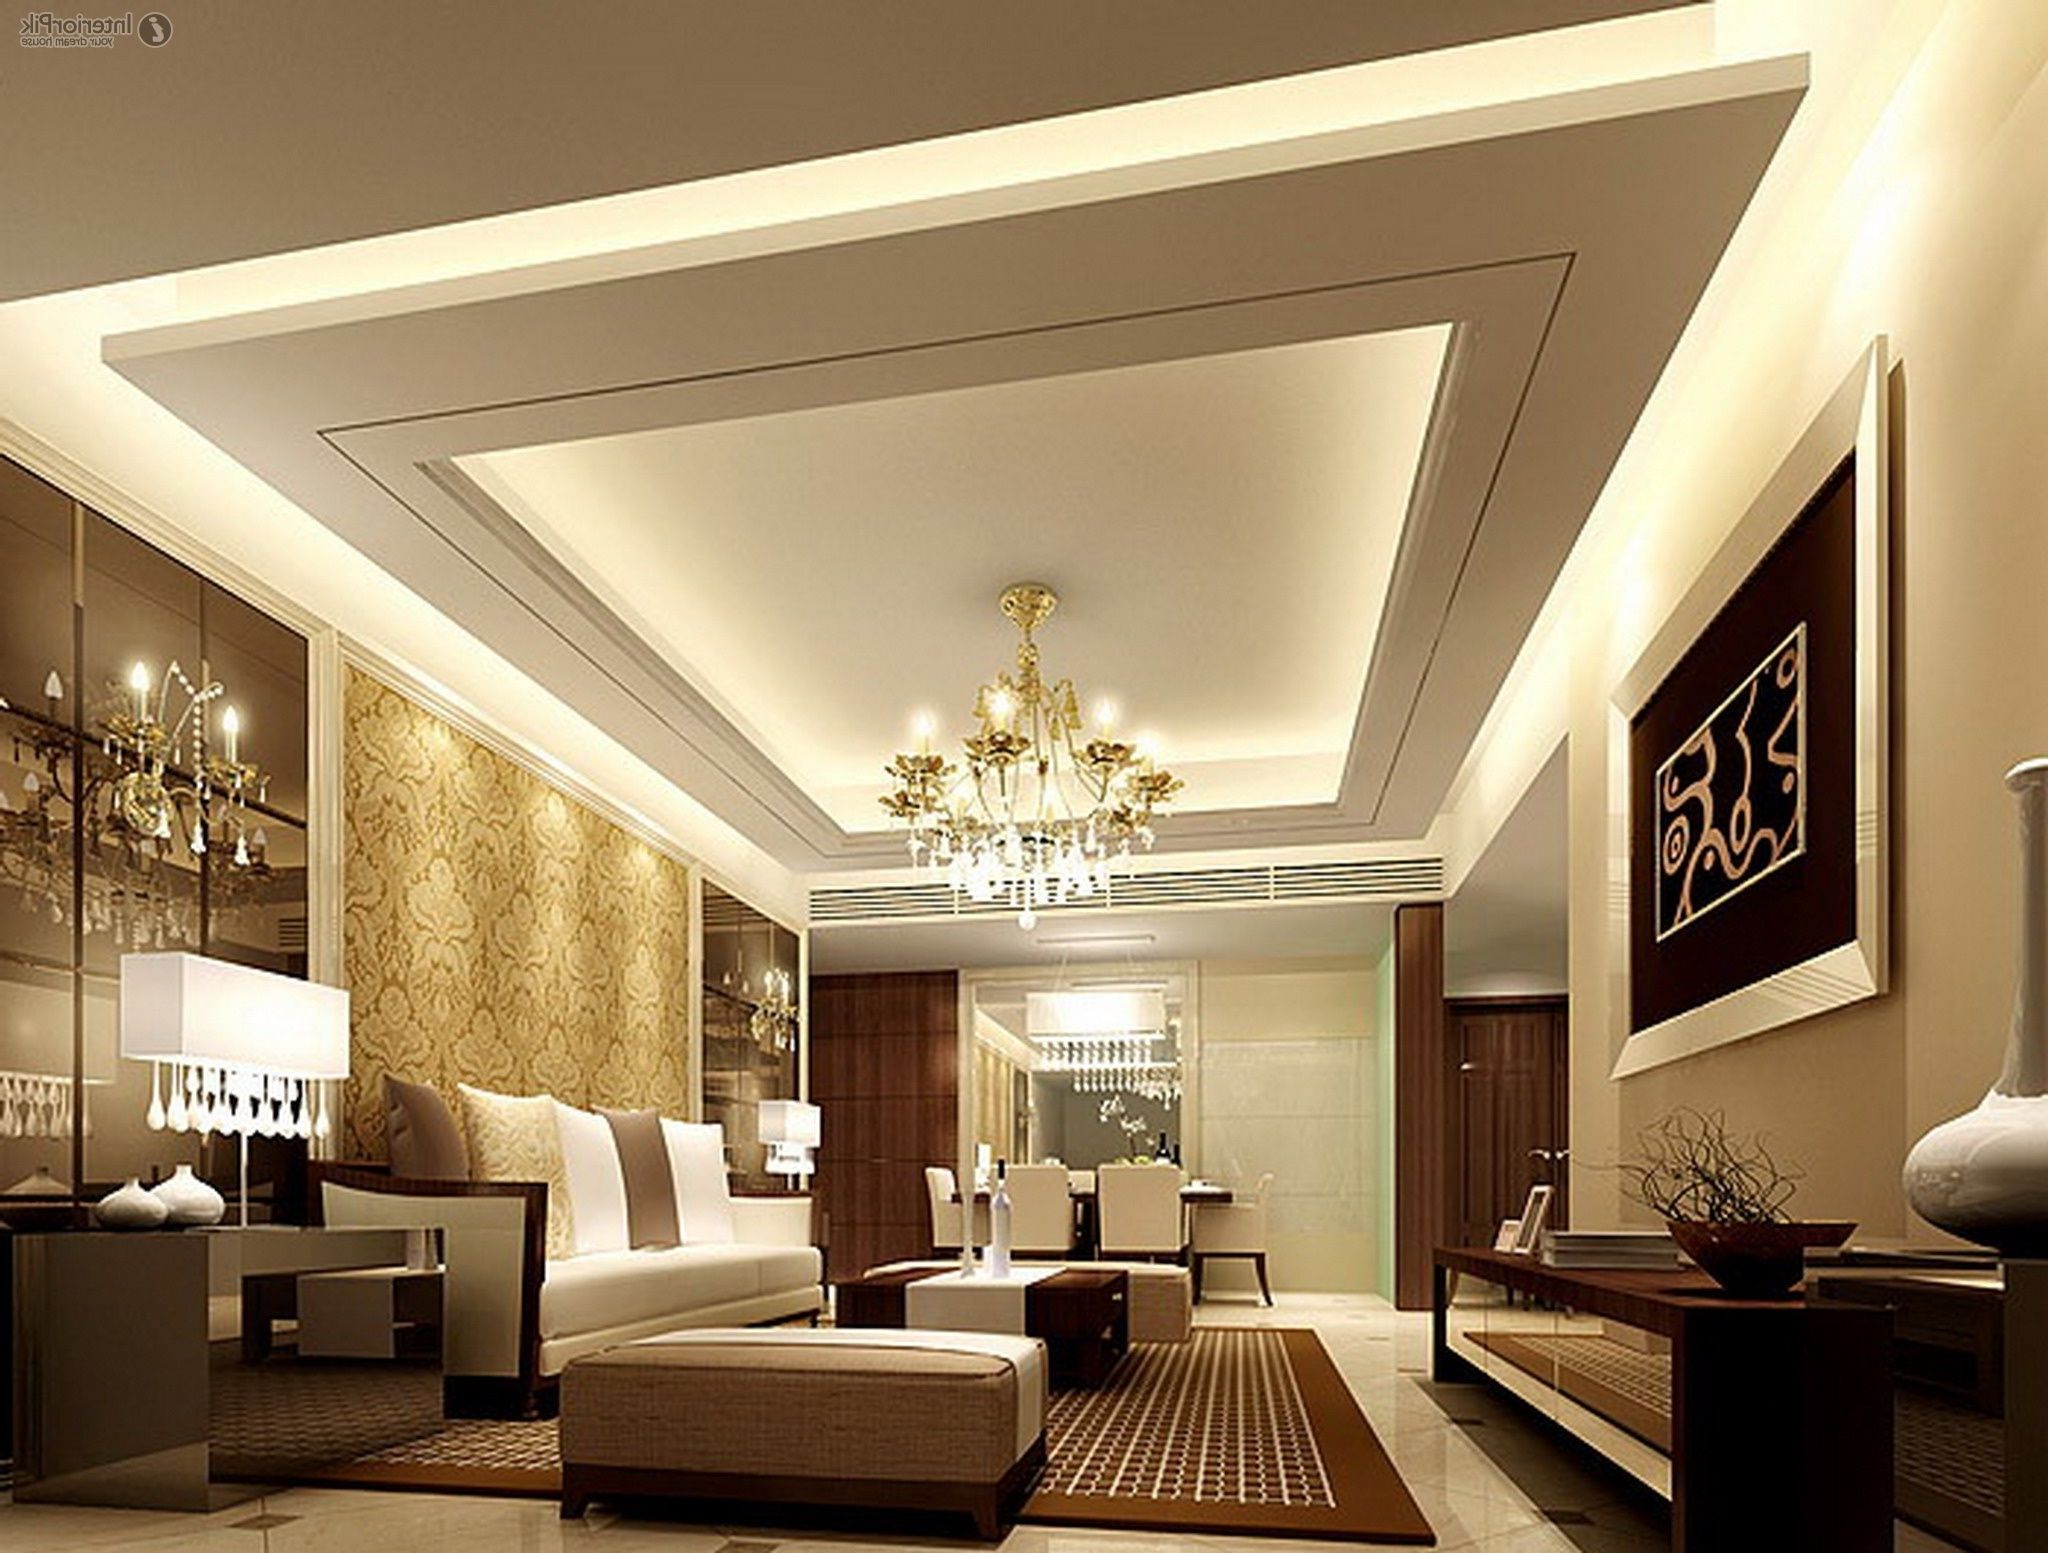 Best Design For Living Room Alluring Gypsum Ceiling Design For Living Room Lighting Home Decorate Best Design Inspiration